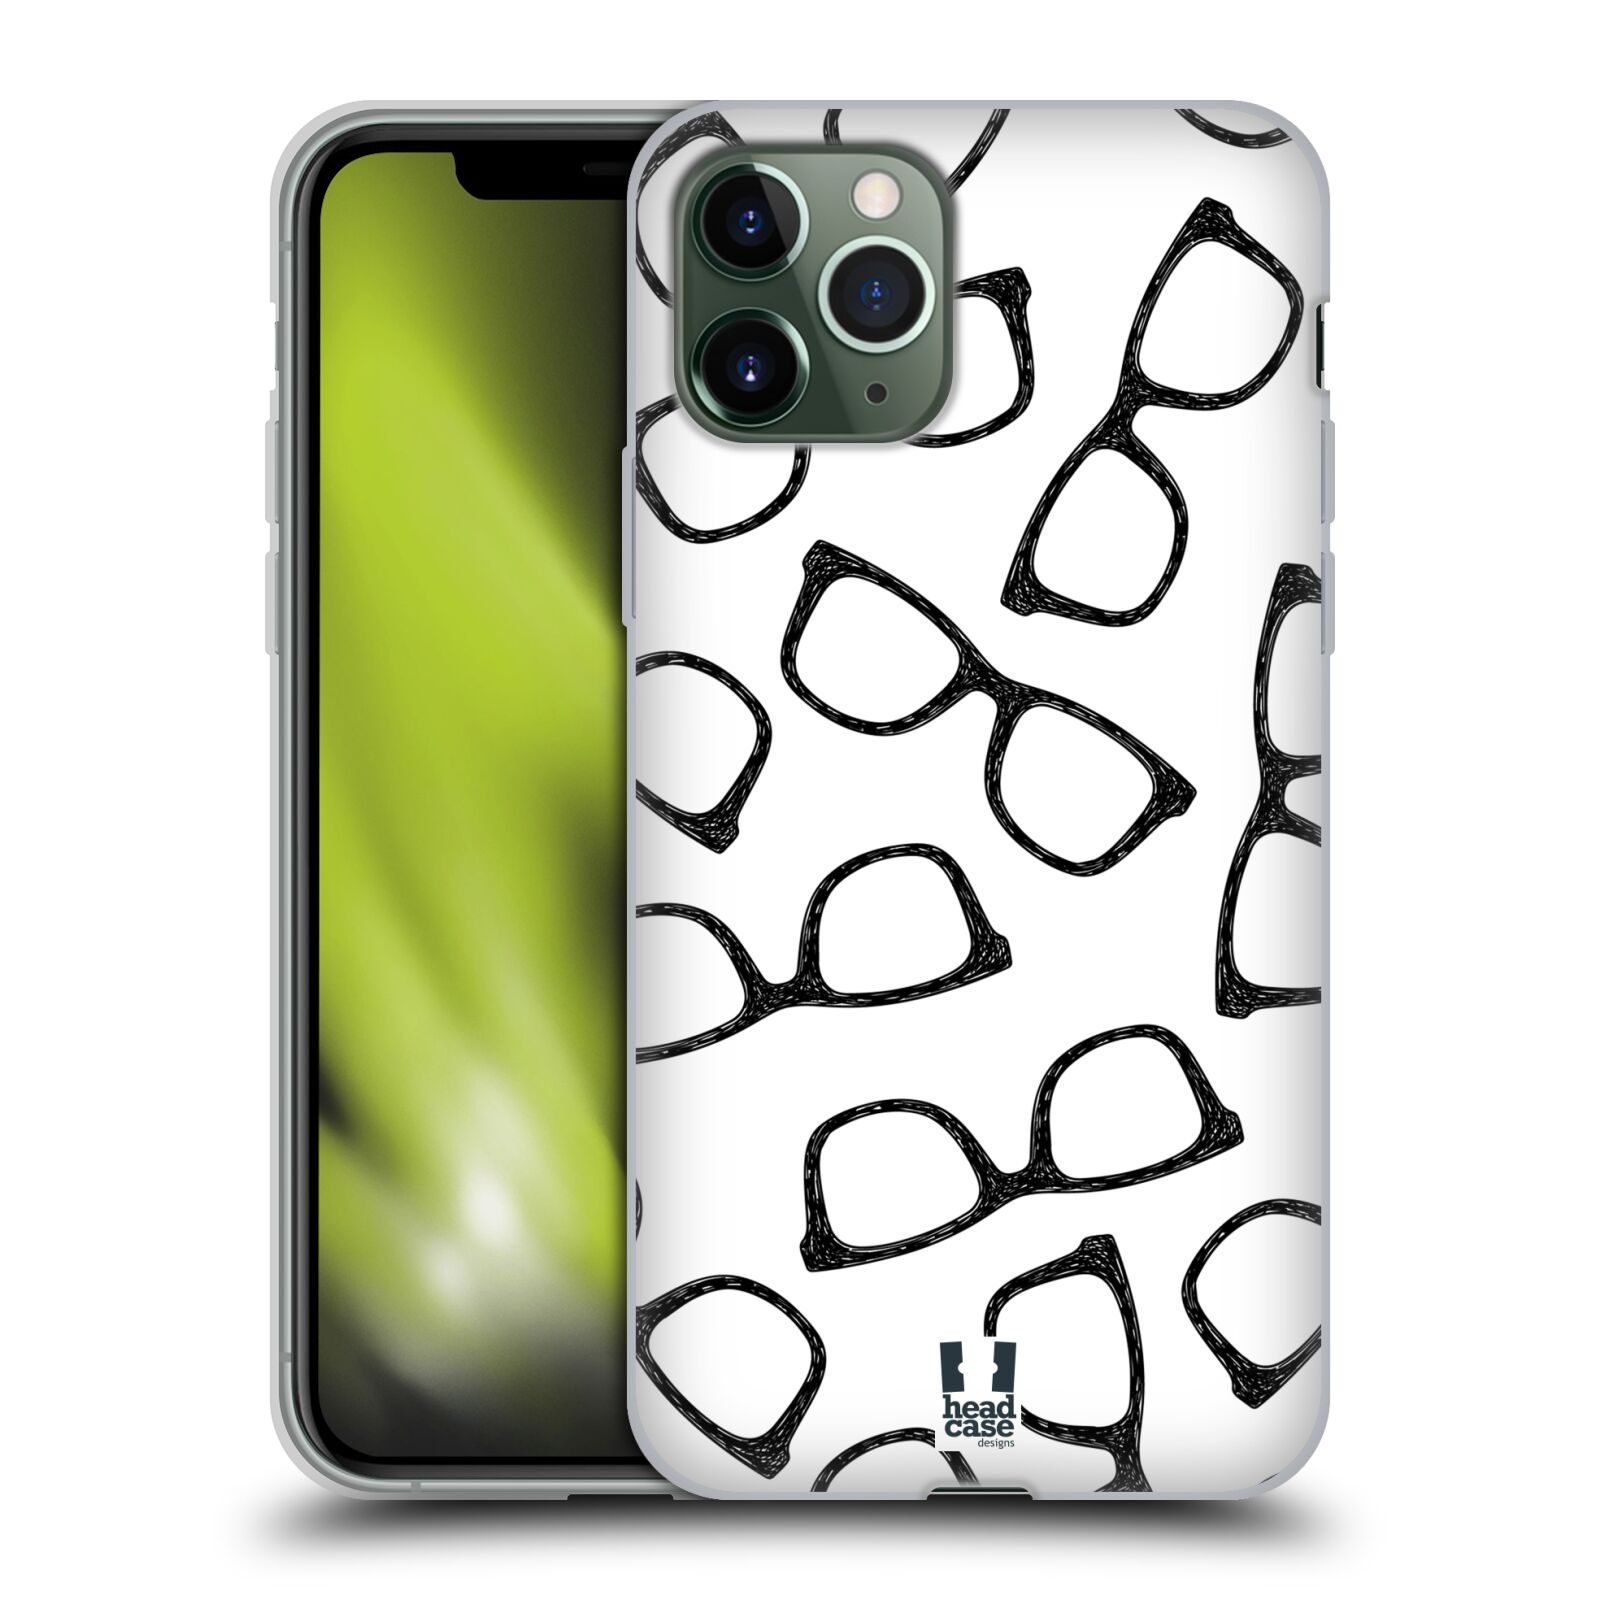 lagerfeld krytu na iphone 8